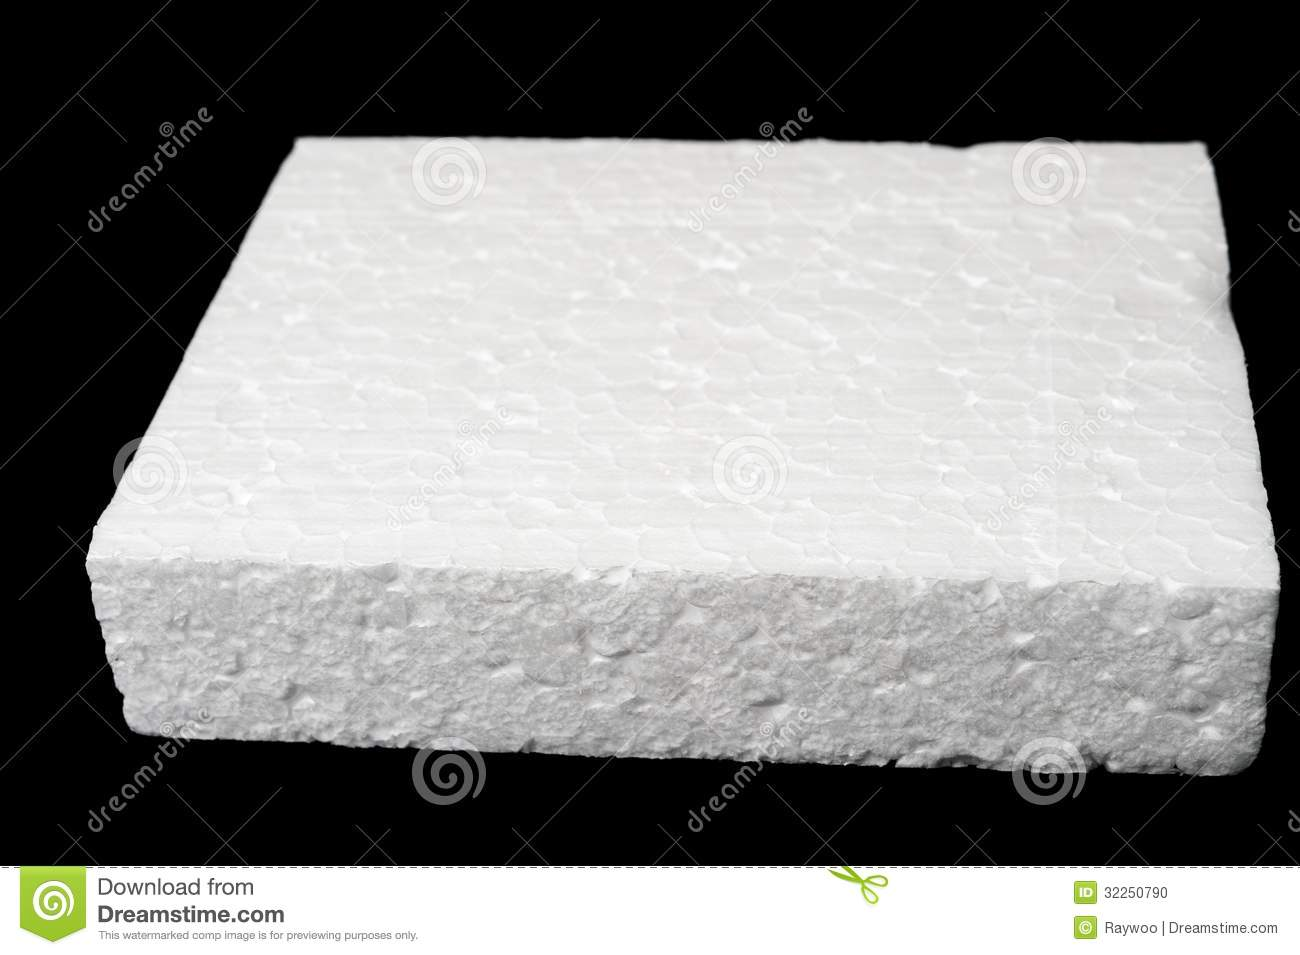 Polystyrene Foam Stock Photo Image 32250790